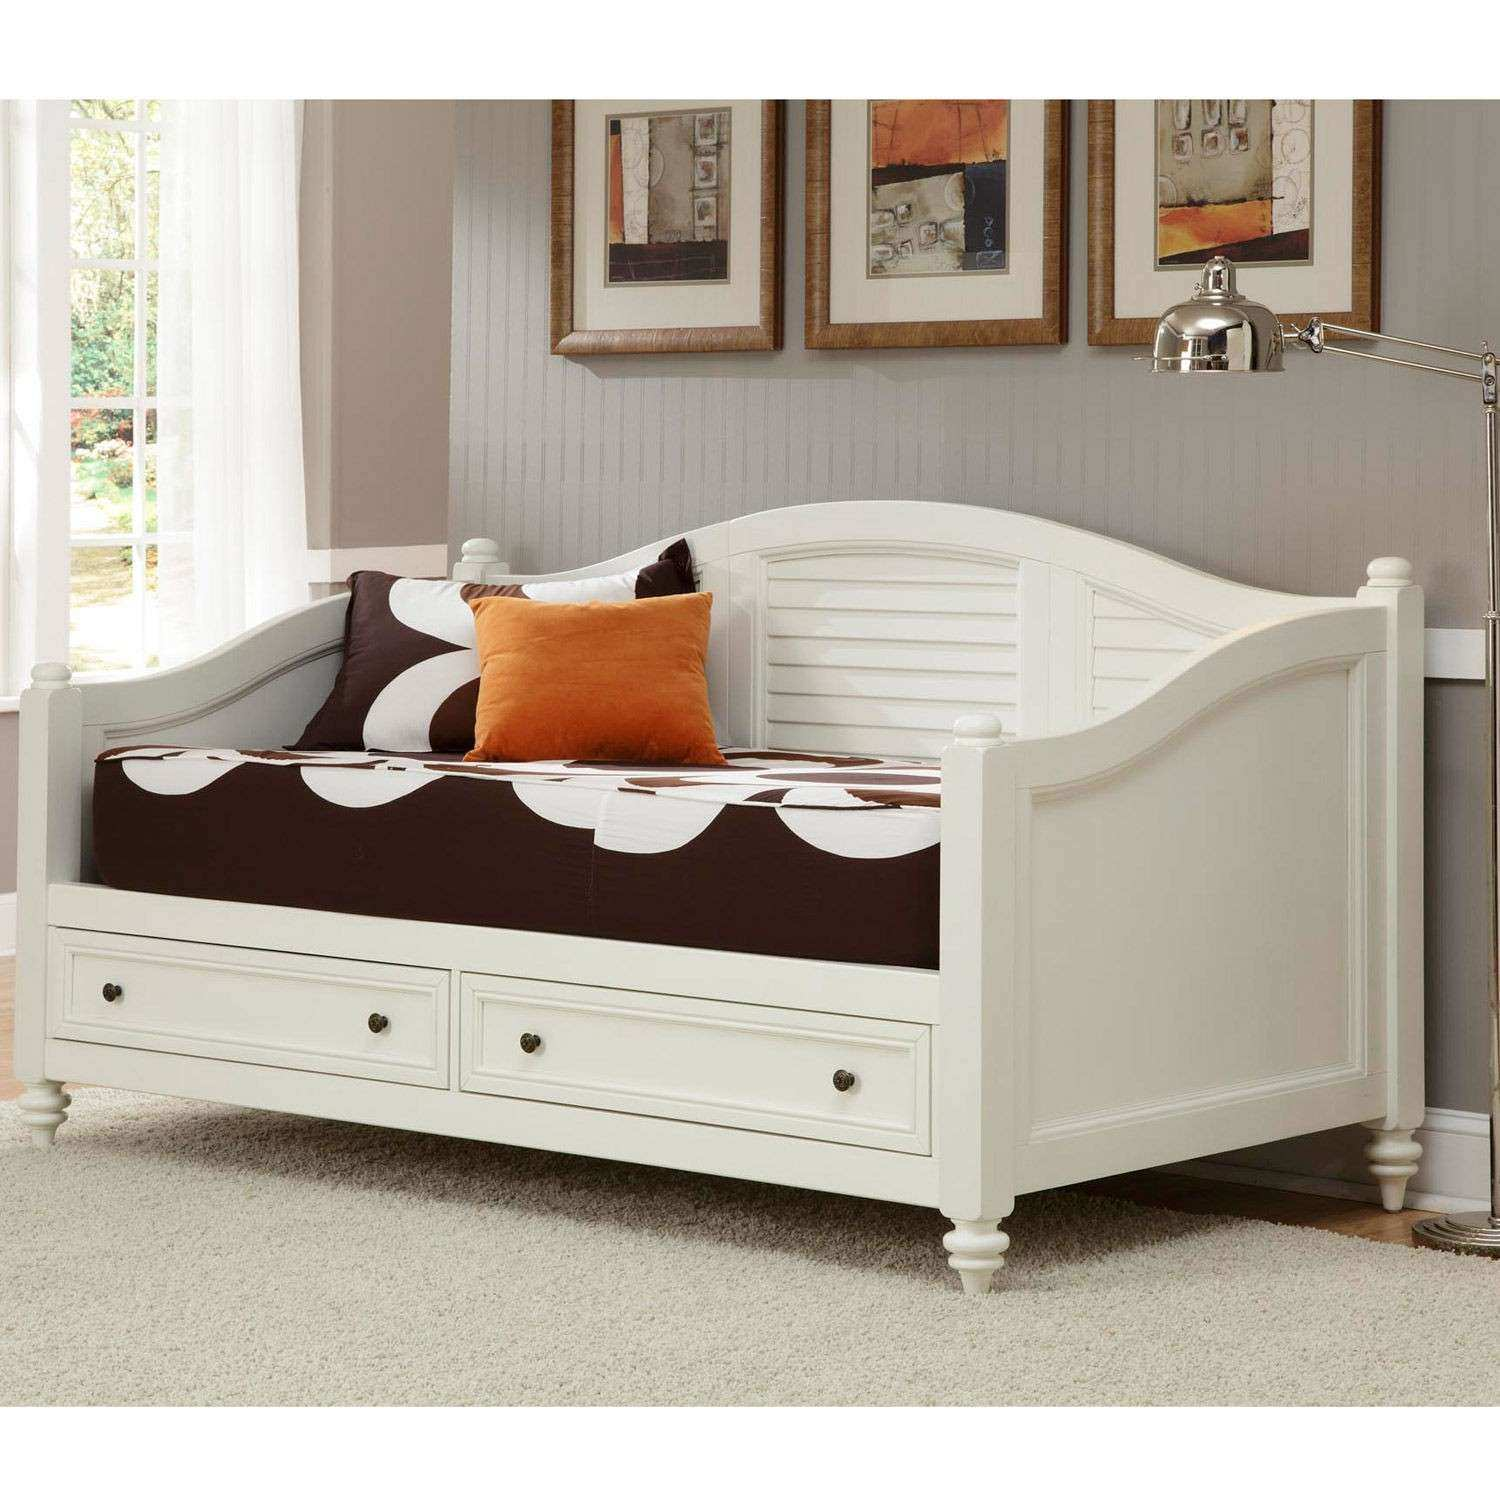 White Wall Decor for Bedroom Lovely Bedroom Awesome Twin Size Bed with Modern Twin Bedding